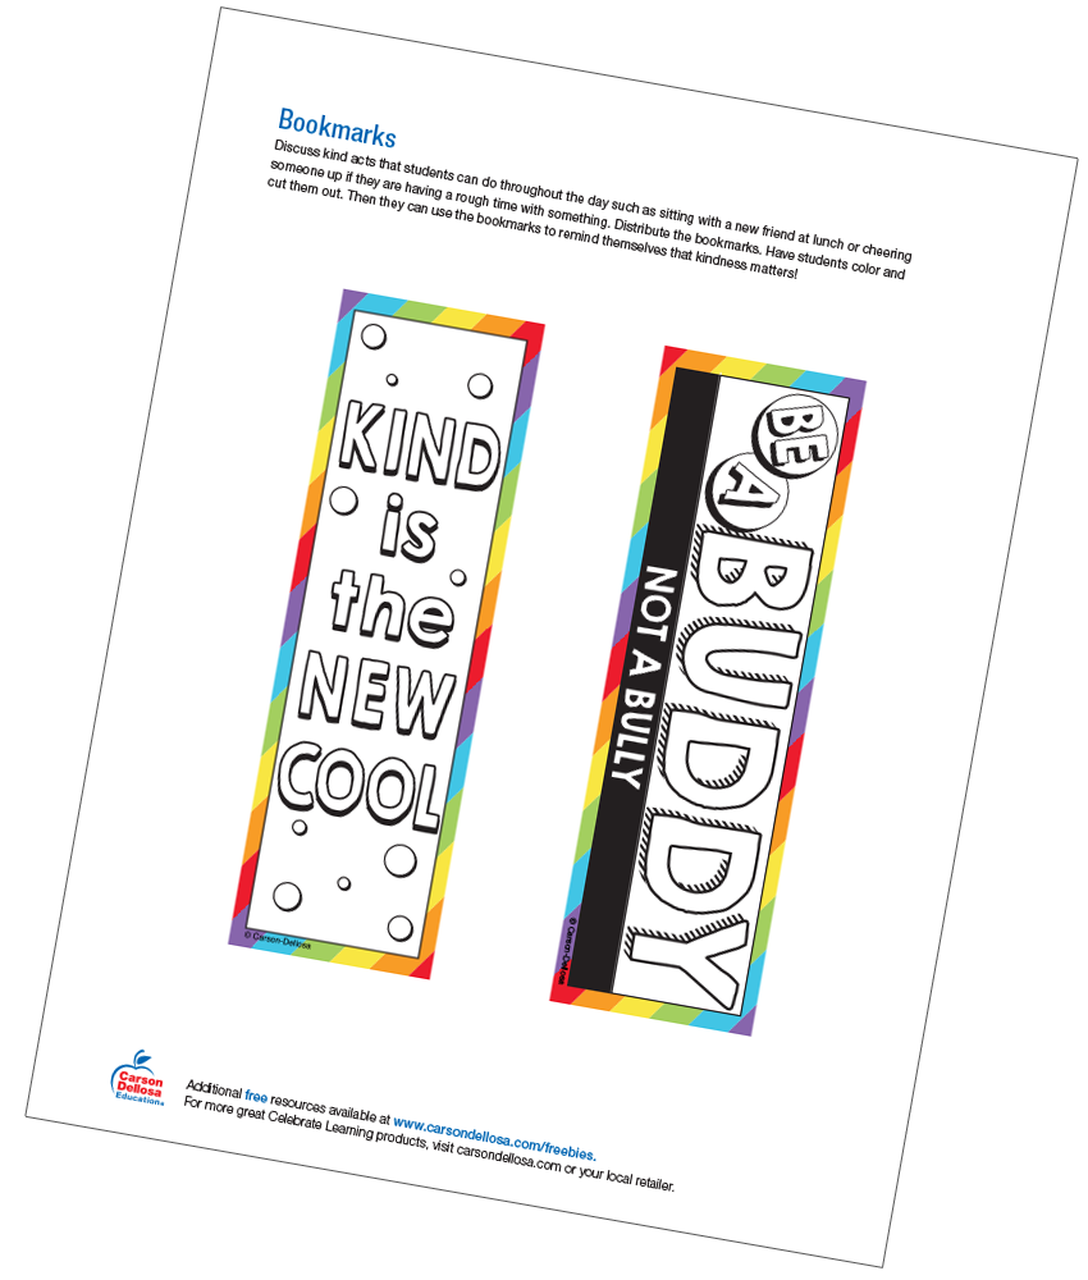 photo about Bookmarks Printable referred to as Bookmarks Absolutely free Printable - Carson Dellosa Training